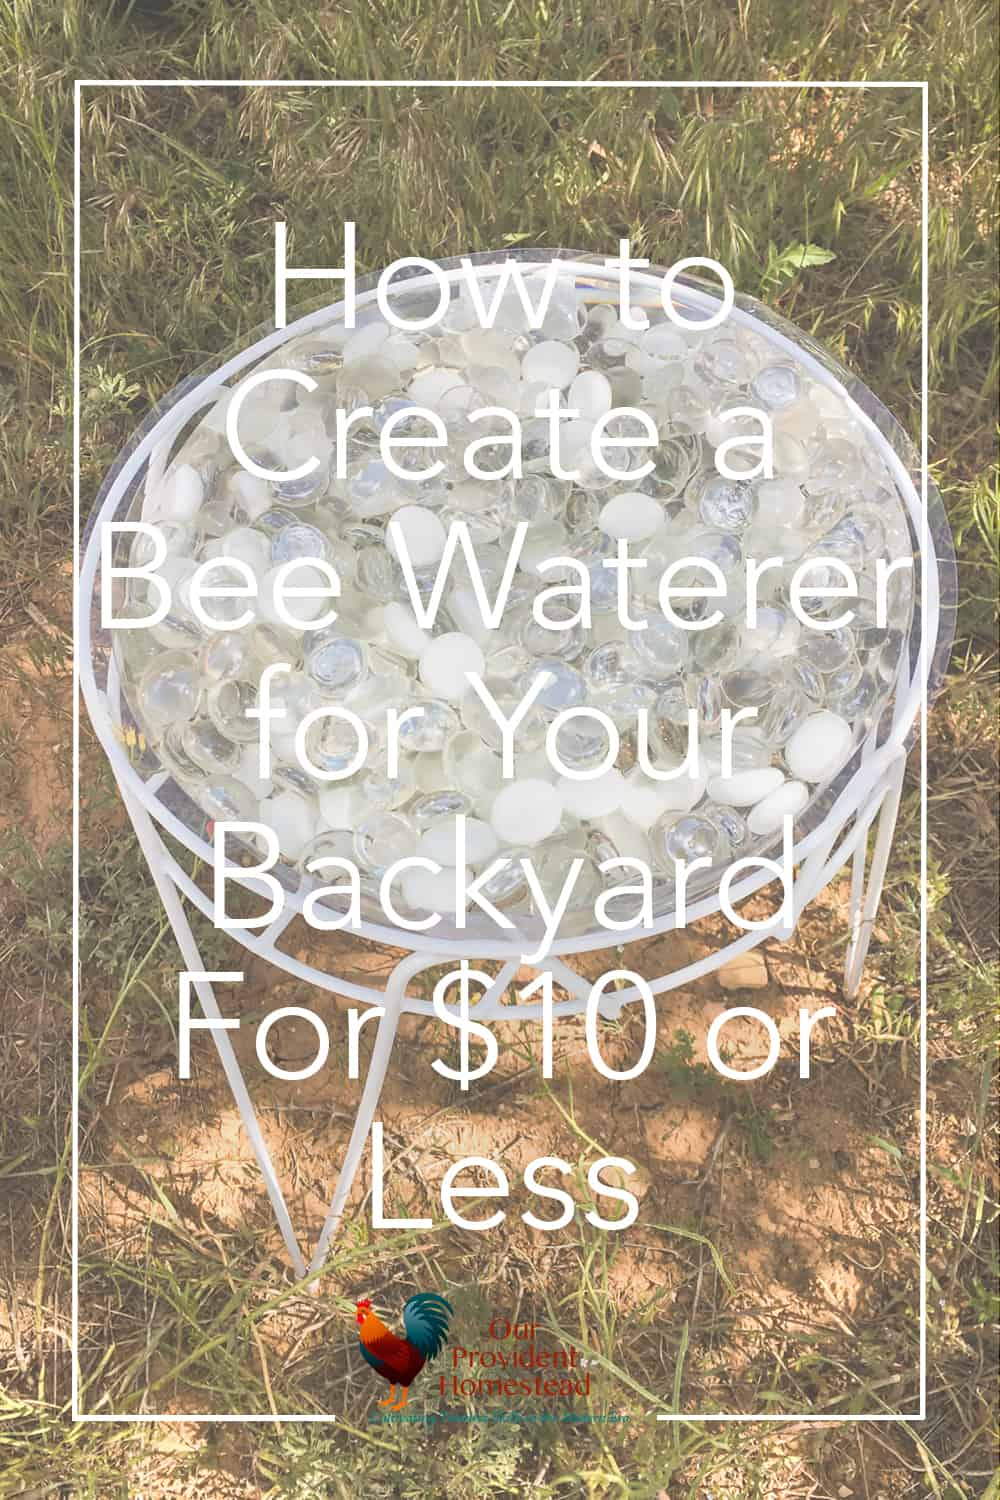 Have you thought of making a bee waterer for your garden? It is a cheap and simple way to help the bees and butterflies stay hydrated every day. #beekeeping #bees #savethebees #beekeepers #feedthebees